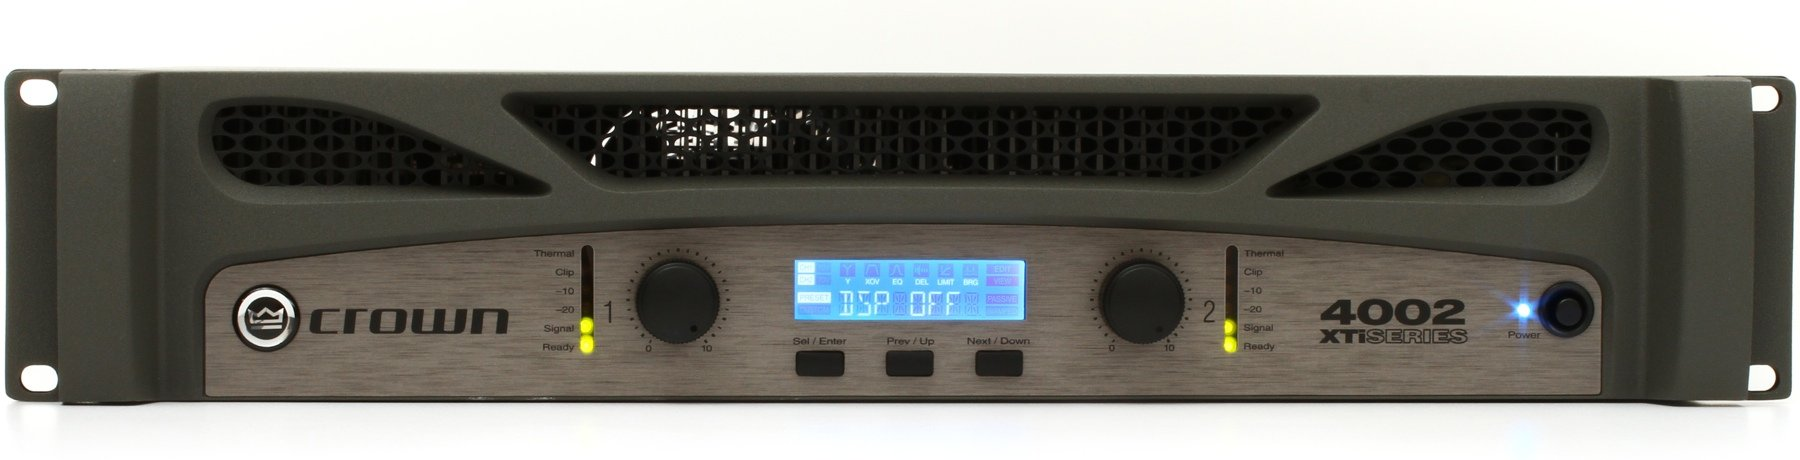 Crown XTi 4002 Power Amplifier